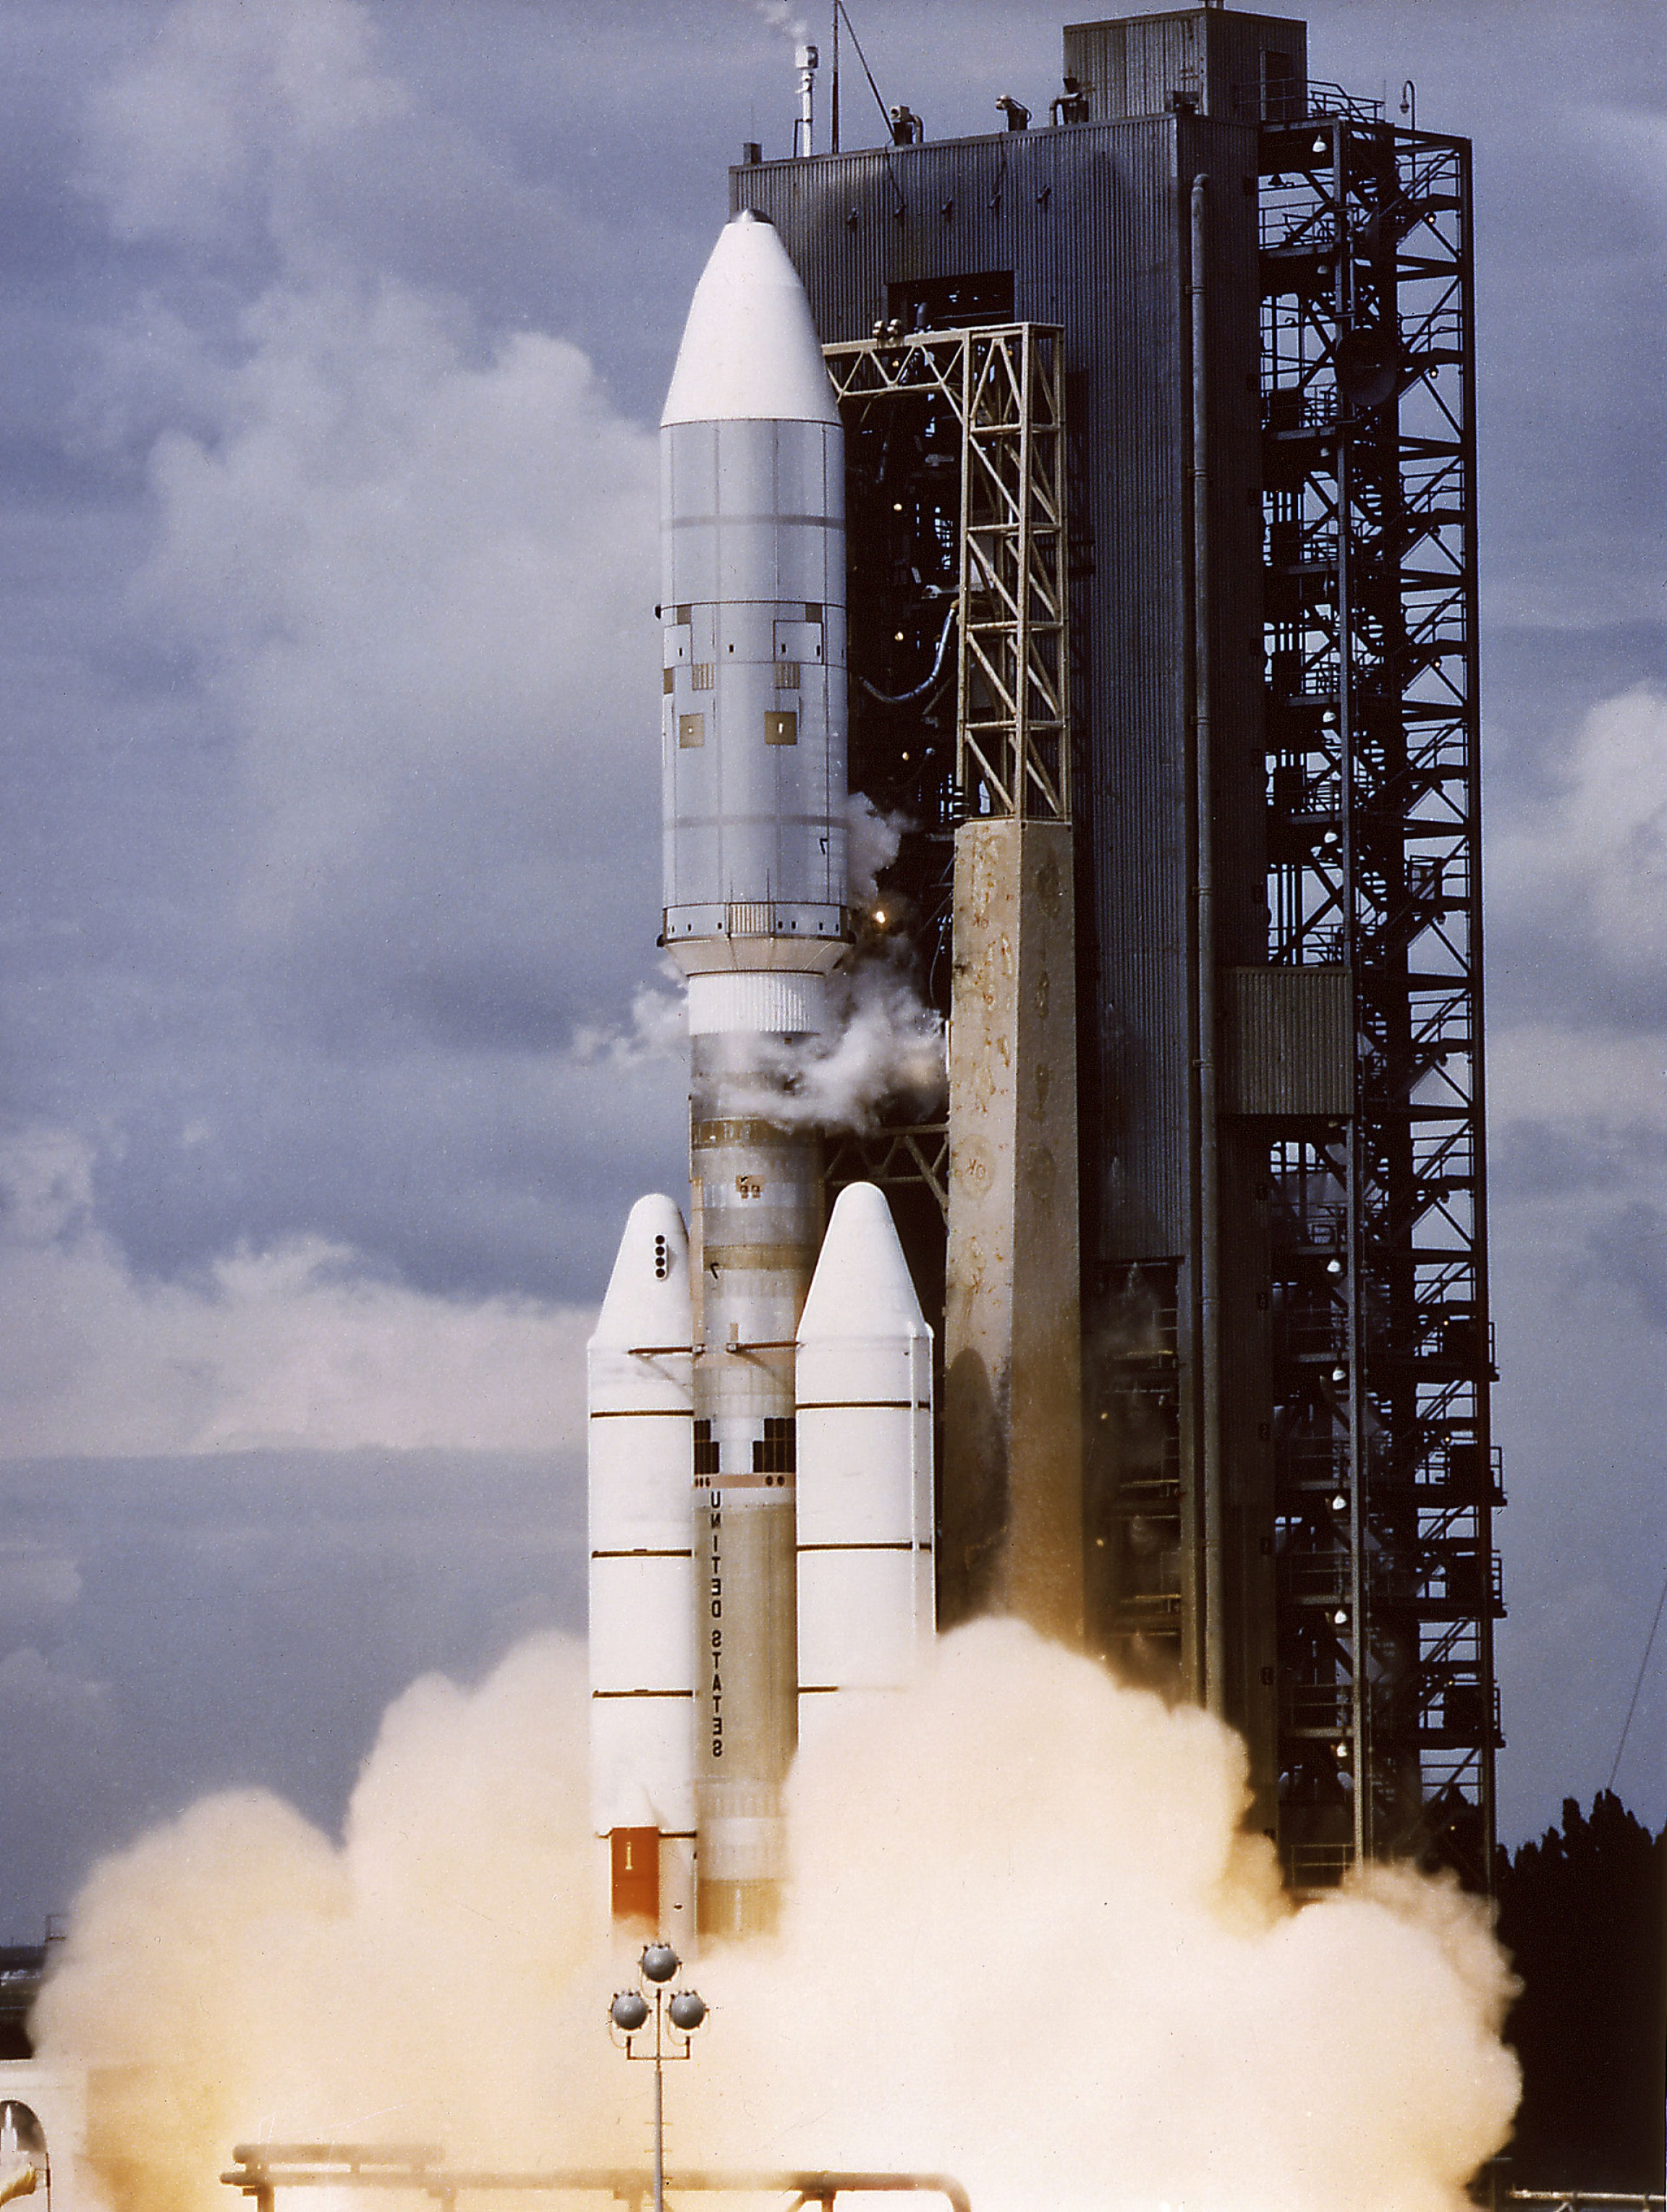 SRB Thrust Vector Control System: What Was The Purpose Of The Small Red Tank Attached To The Titan Centaur Launche